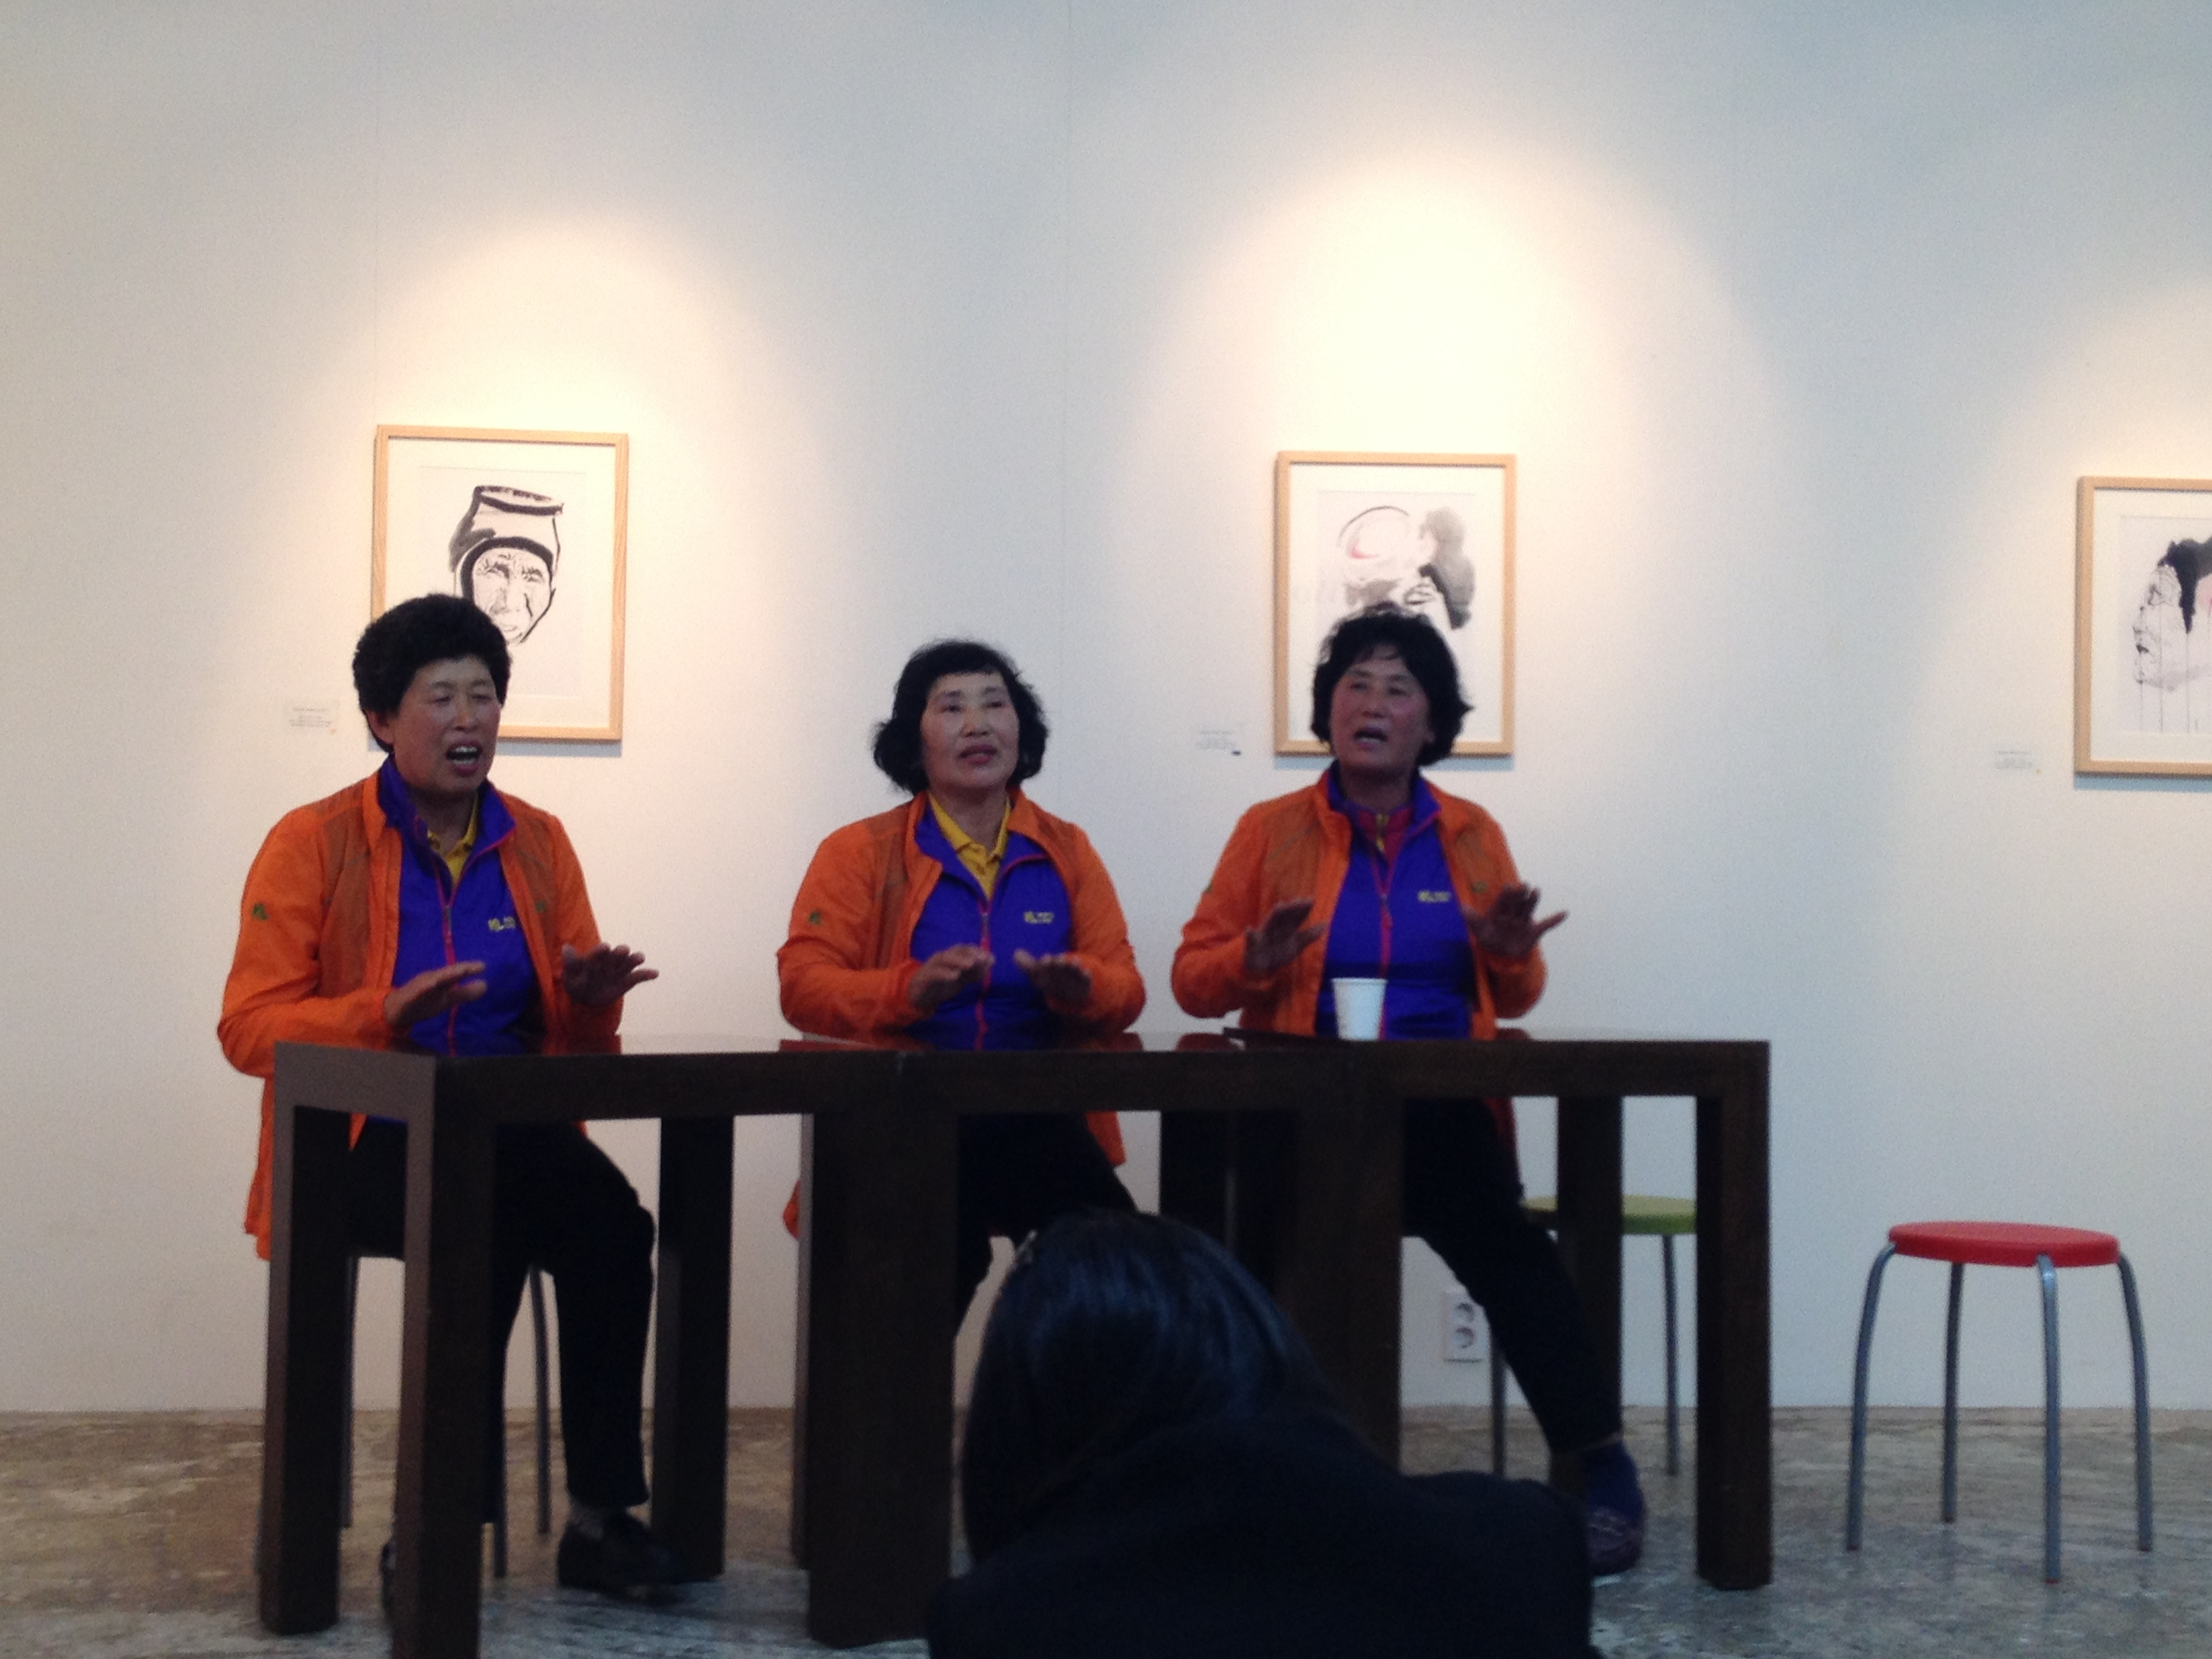 Haenyeo performing a traditional song following a showing of SeaWomen